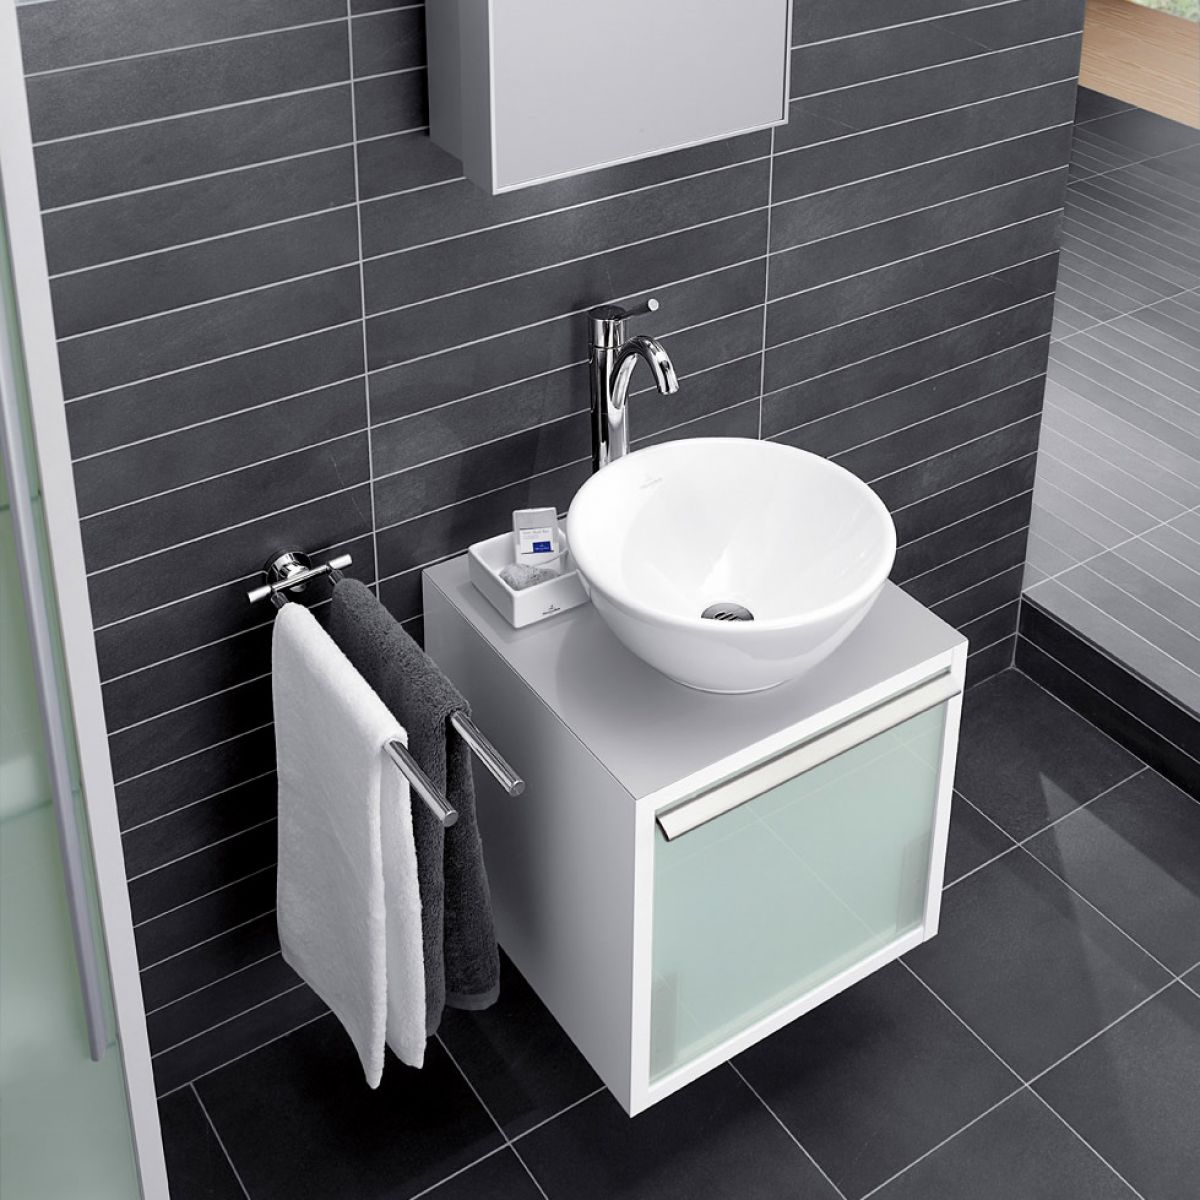 villeroy and boch bathroom tiles villeroy amp boch bernina tiles 2410 7 5 x 60cm uk bathrooms 24494